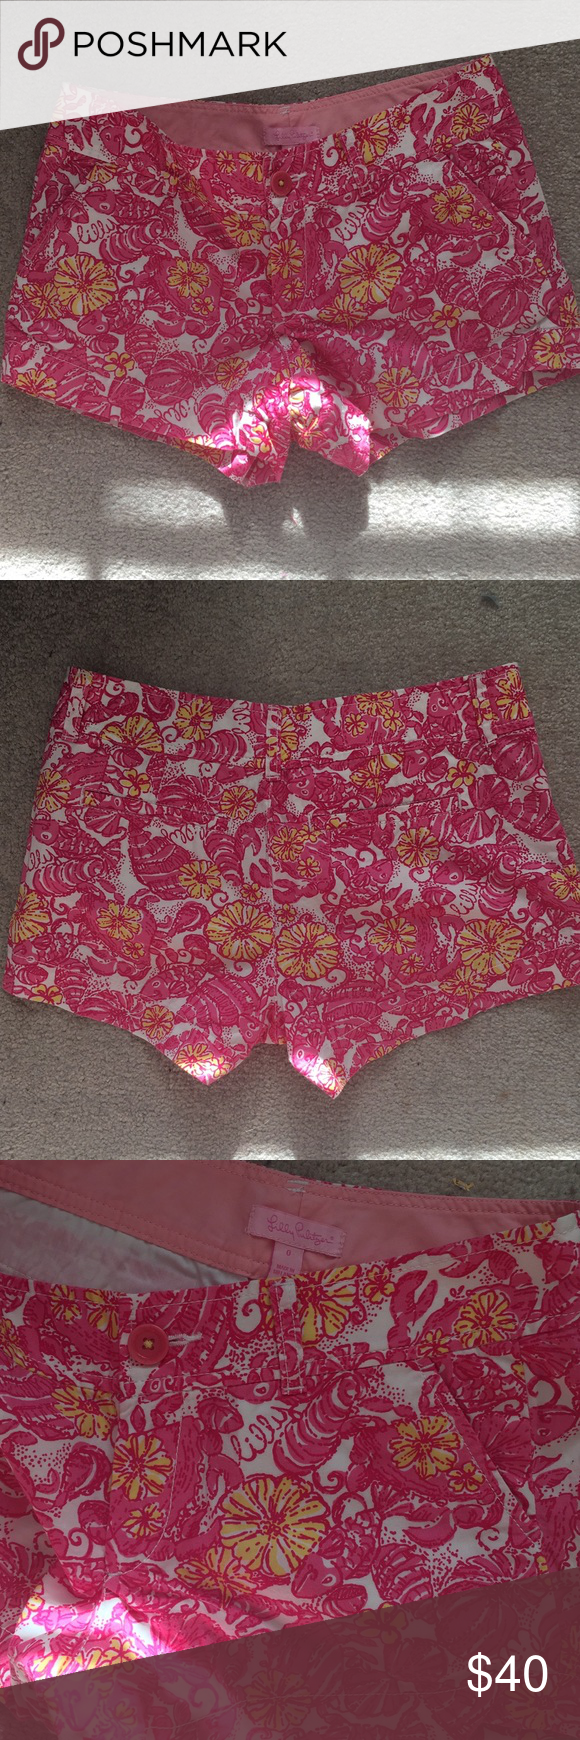 """EUC Lilly Pulitzer Chum Bucket Walsh Shorts Sz 0 Excellent used condition Lilly Pulitzer walsh shorts in The print """"Chum Bucket"""" in size 0. Inseam is 3"""". Lilly Pulitzer Shorts"""